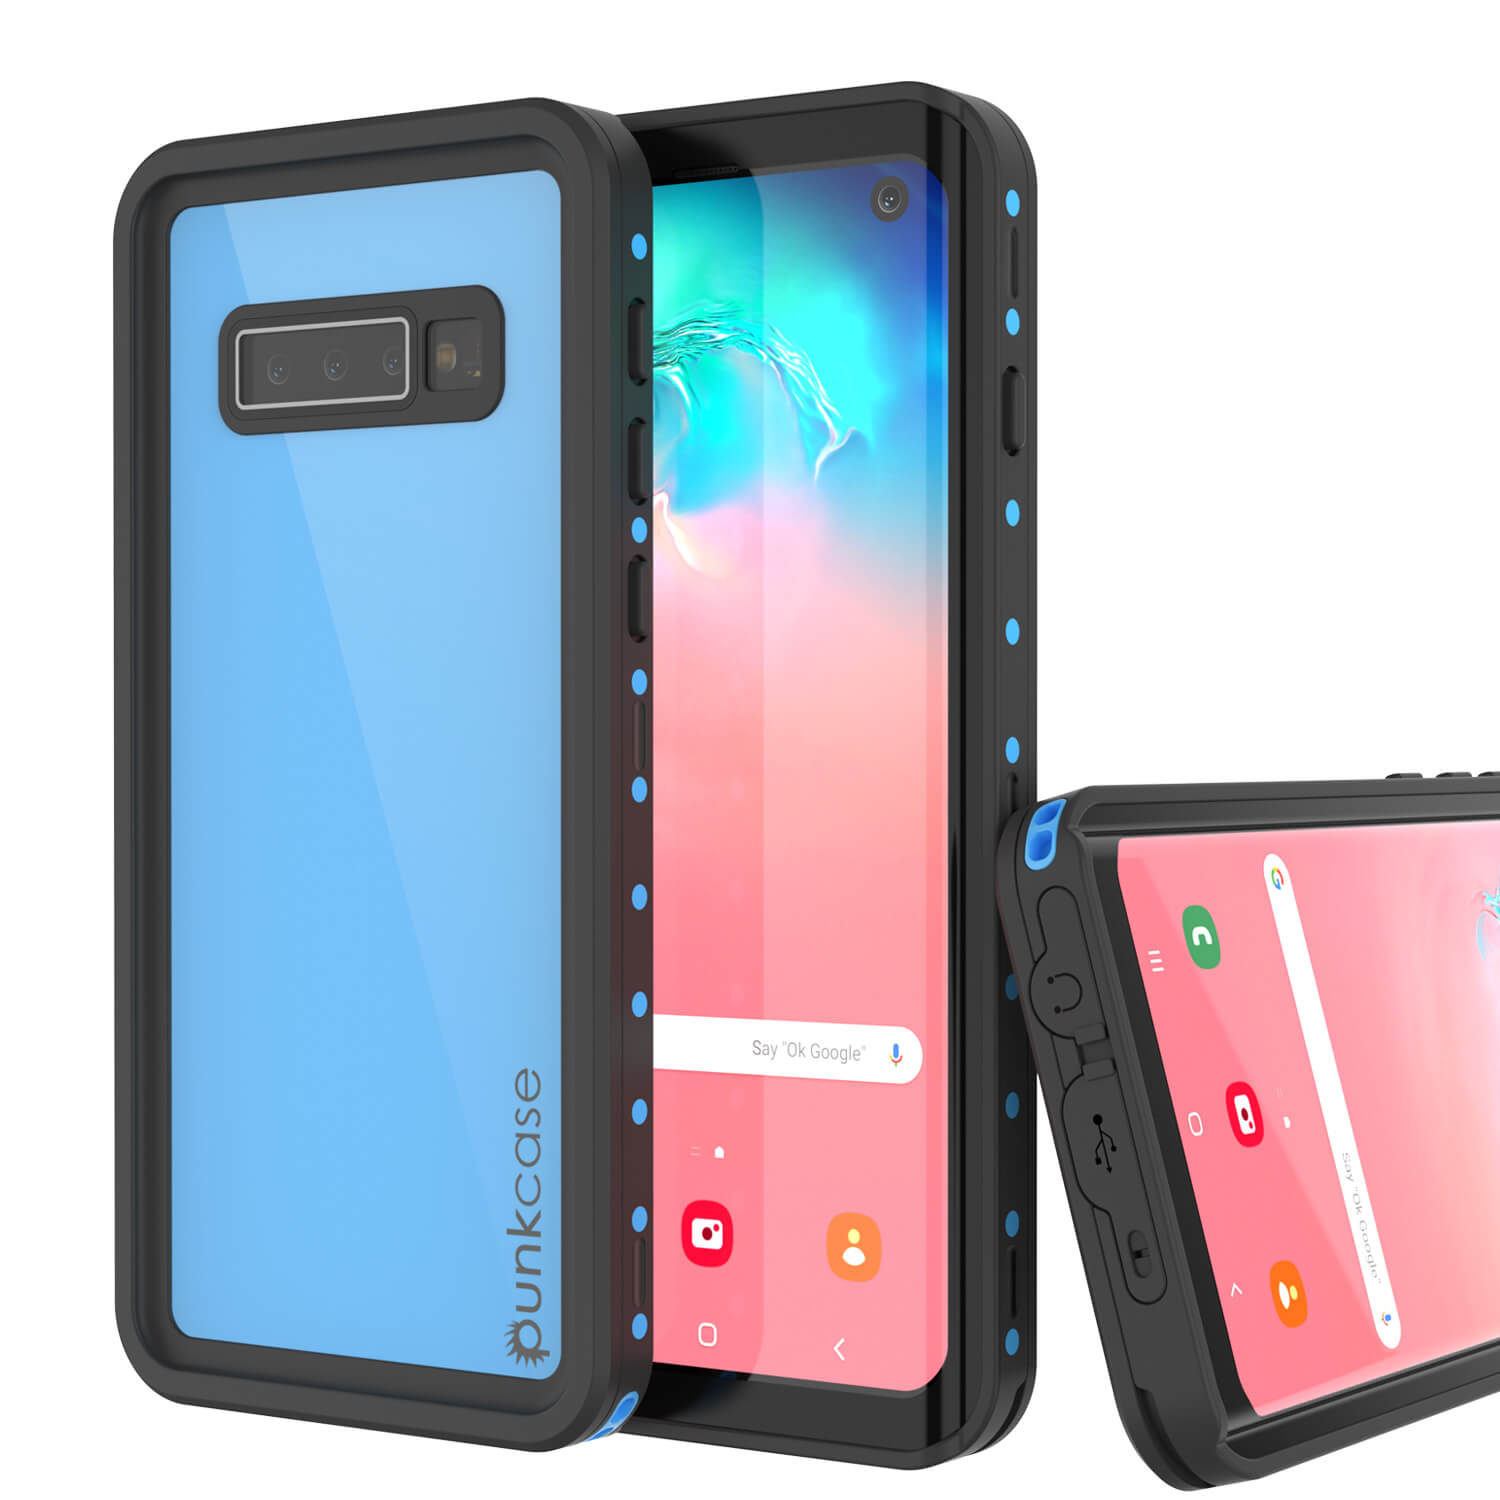 Galaxy S10 Waterproof Case PunkCase StudStar Light Blue Thin 6.6ft Underwater IP68 ShockProof